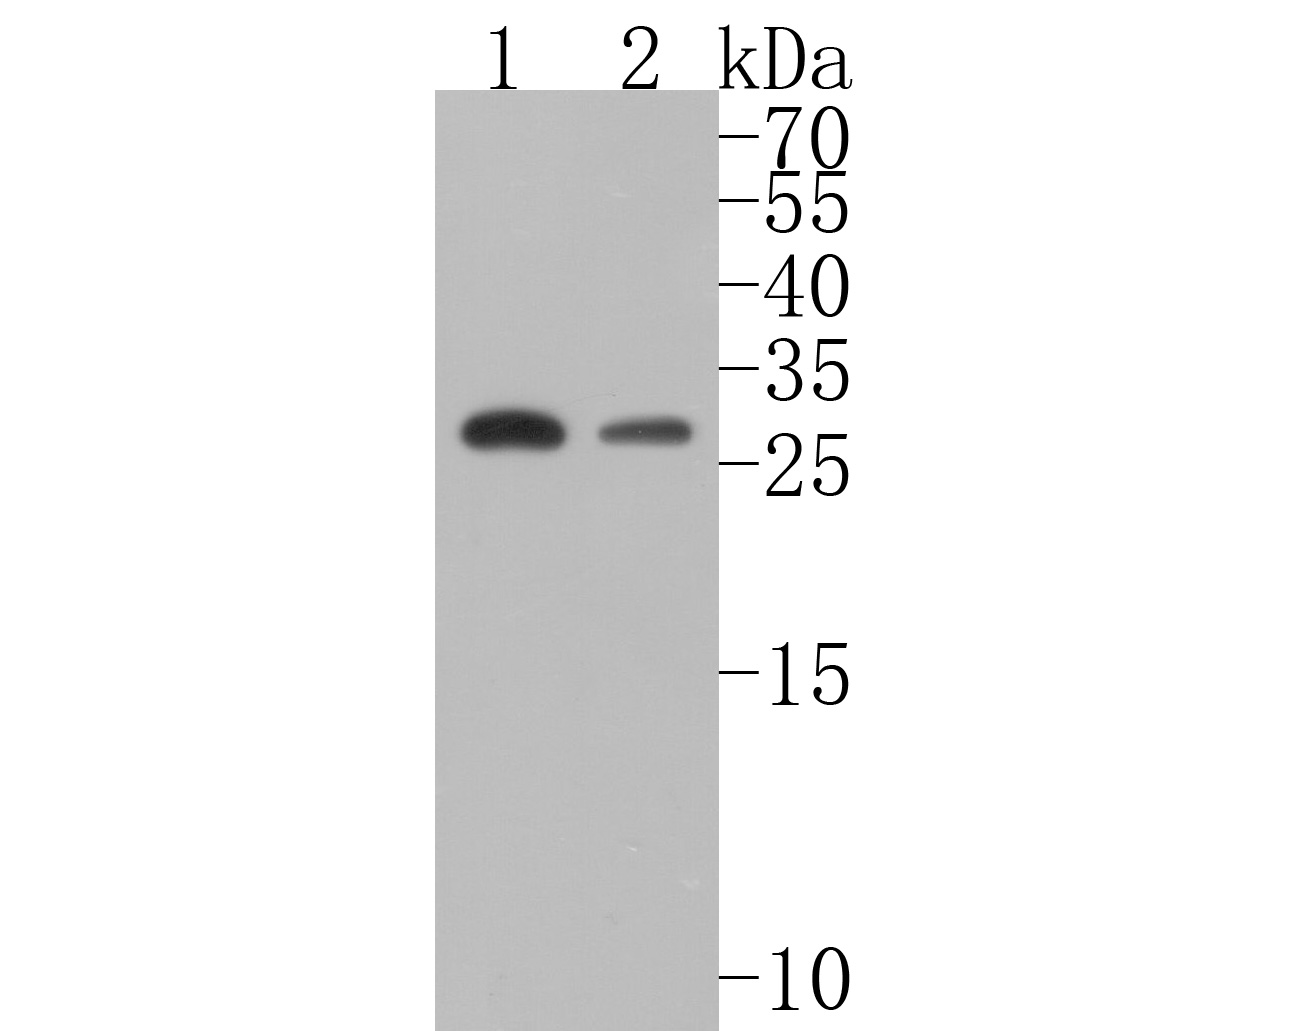 Western blot analysis of 14-3-3 Theta on different lysates. Proteins were transferred to a PVDF membrane and blocked with 5% BSA in PBS for 1 hour at room temperature. The primary antibody (ET1612-97, 1/500) was used in 5% BSA at room temperature for 2 hours. Goat Anti-Rabbit IgG - HRP Secondary Antibody (HA1001) at 1:5,000 dilution was used for 1 hour at room temperature.<br /> Positive control: <br /> Lane 1: MCF-7 cell lysate<br /> Lane 2: Hela cell lysate